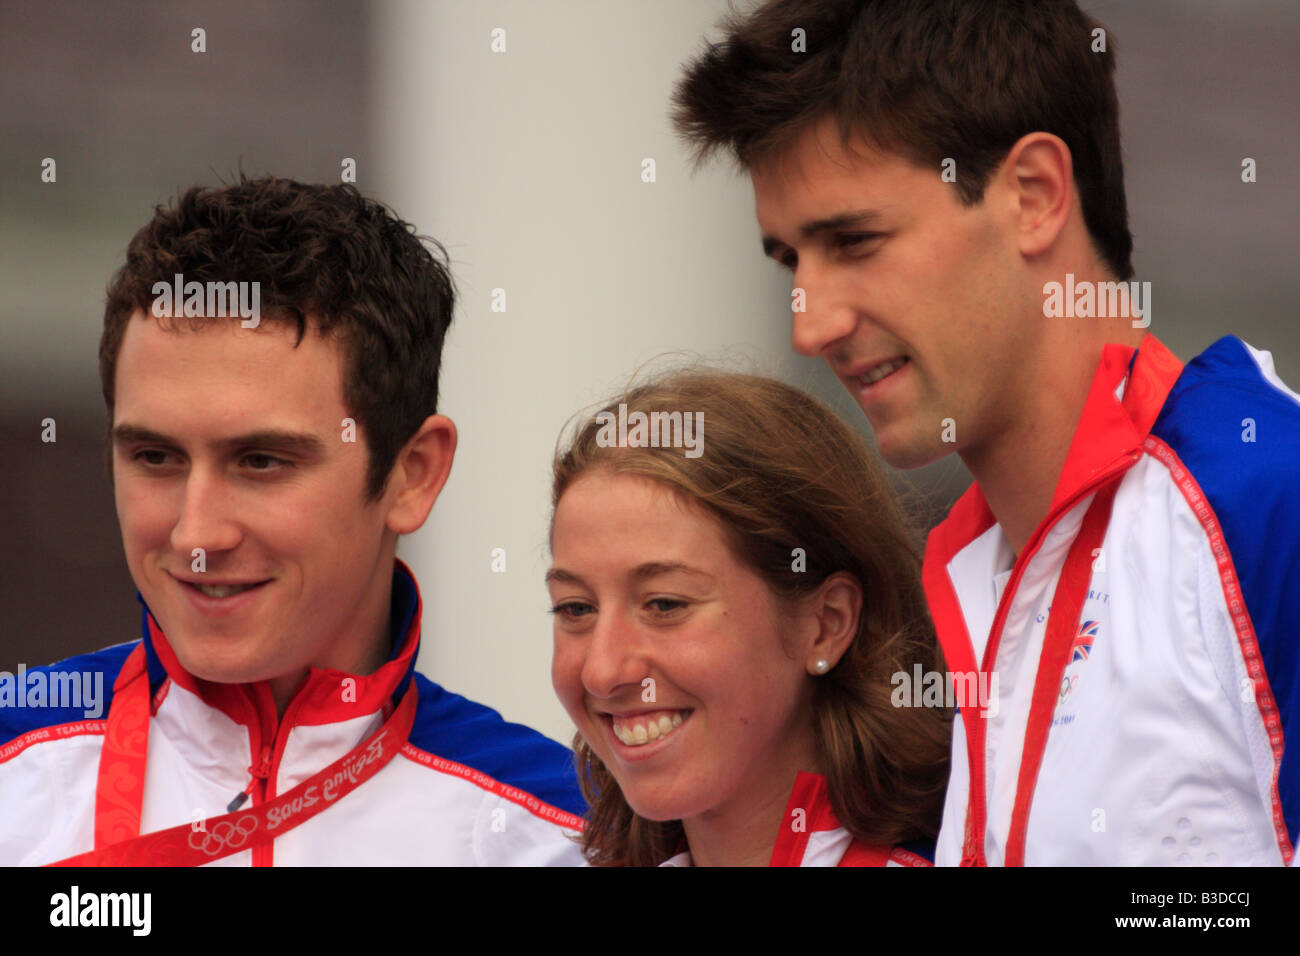 Geraint Thomas, Nicole Cooke, and Tom James, who all won gold medals at the 2008 Beijing Olympics, at a ceremony - Stock Image